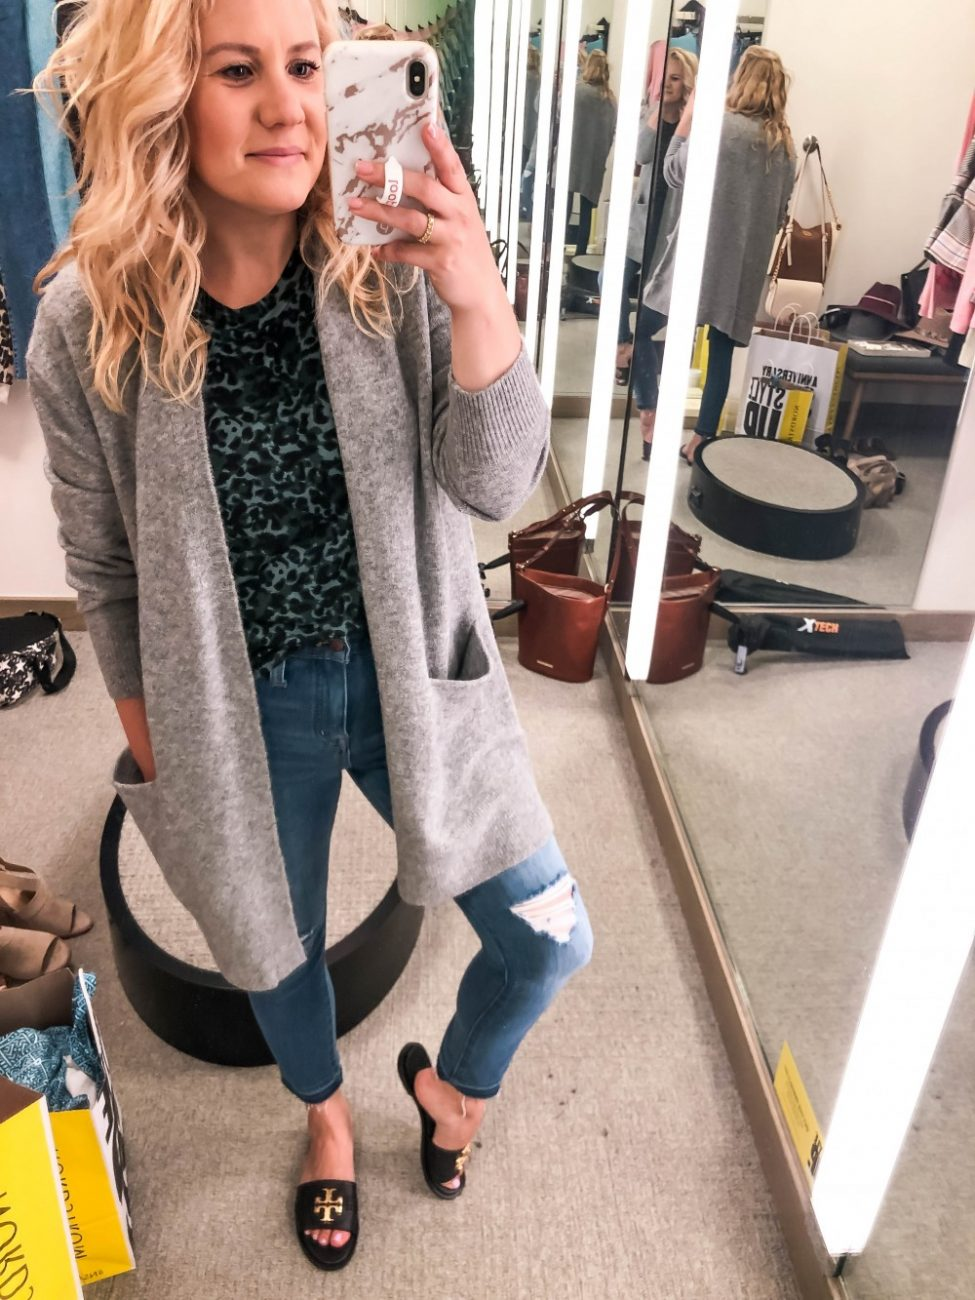 2019 Nordstrom Anniversary Sale Early Access just started and I'm sharing my top picks from the dressing room today! I got to go in during the Icon and Ambassador pre-sale and I really narrowed it down this year to my must-haves. Click on over to the post to check it out!! #NSALE #nordstromanniversarysale #dressingroomdiaries #tryonsession #fallfashion #prefallsale